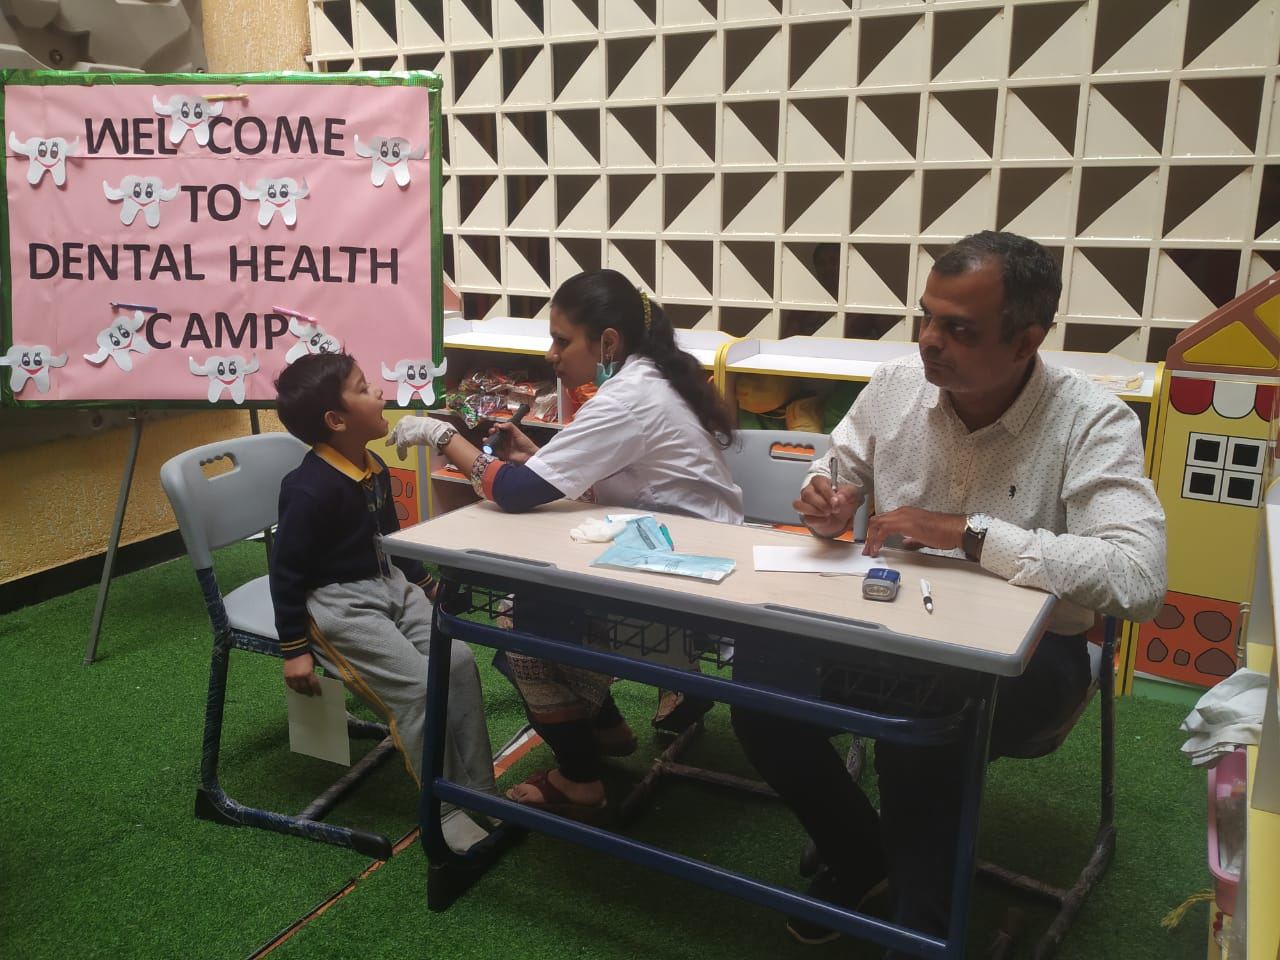 school-activity-dental-health-camp-vijaya-convent-school-amravati